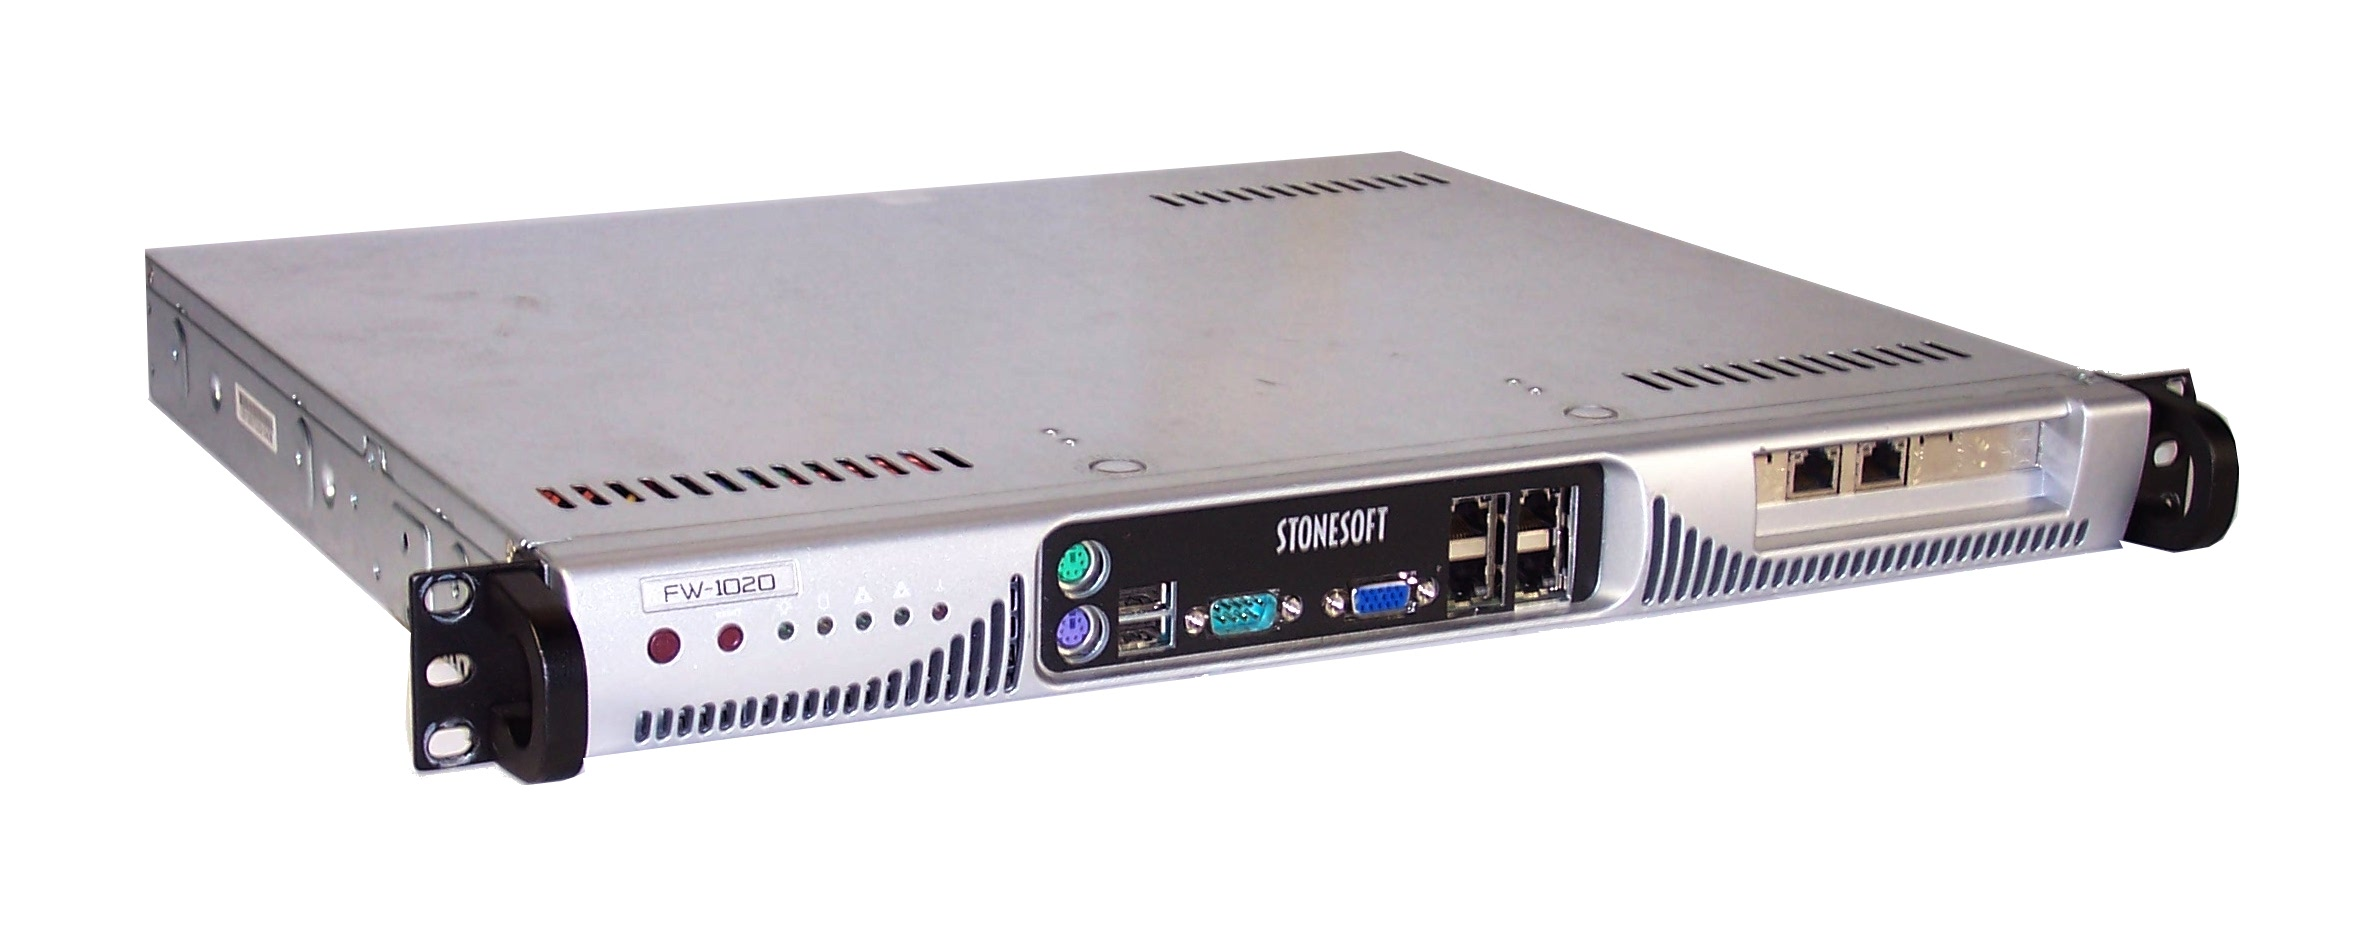 firewall security Configserver security & firewall (csf) a stateful packet inspection (spi) firewall, login/intrusion detection and security application for linux servers.